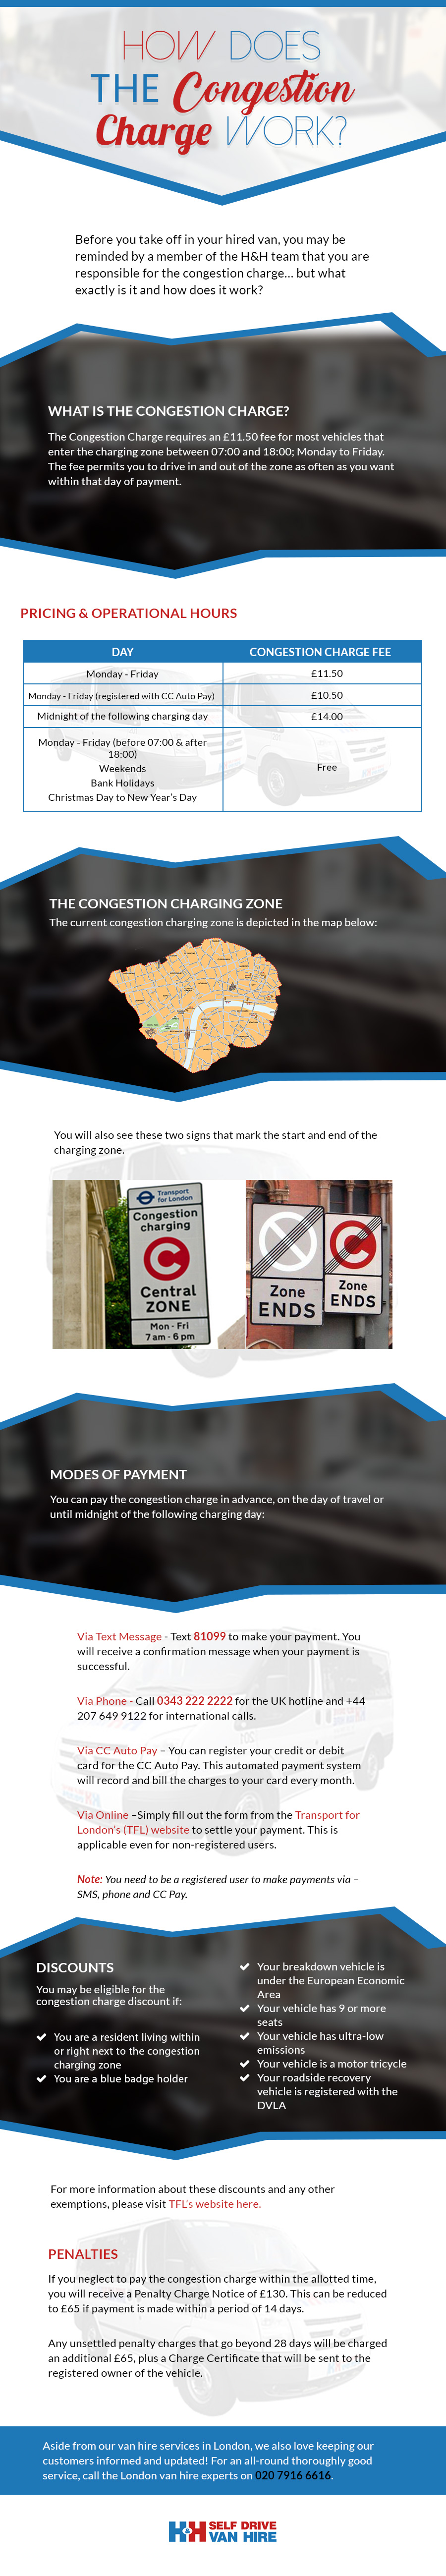 How Does the Congestion Charge Work?